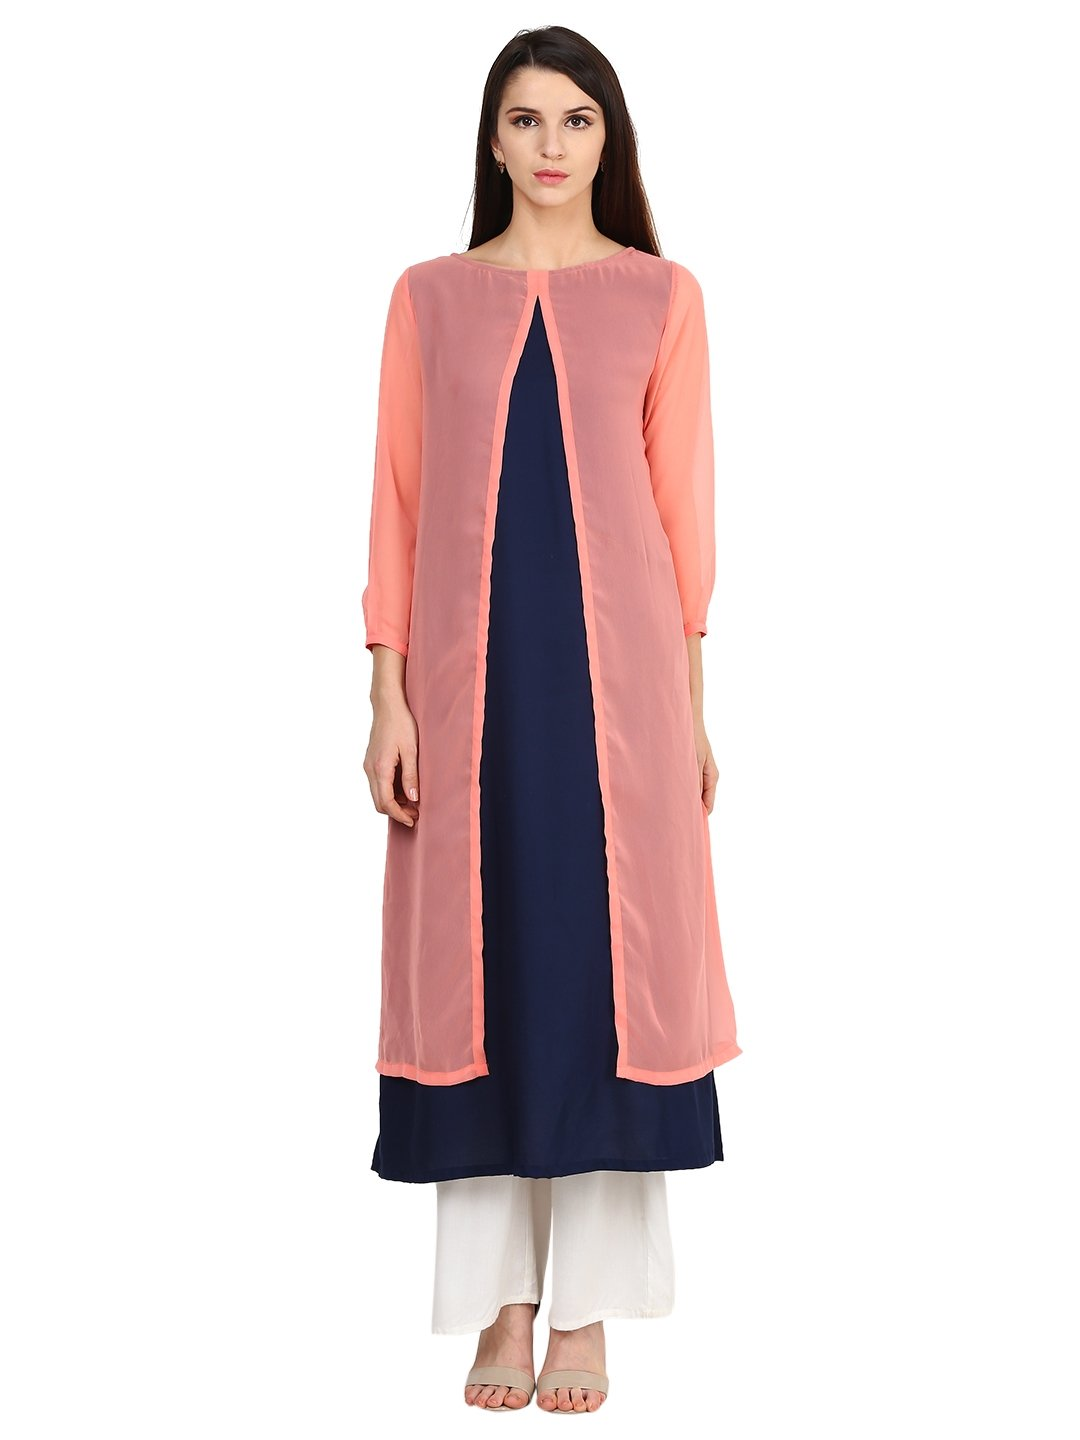 Castle Navy Blue Plain Georgette Kurta